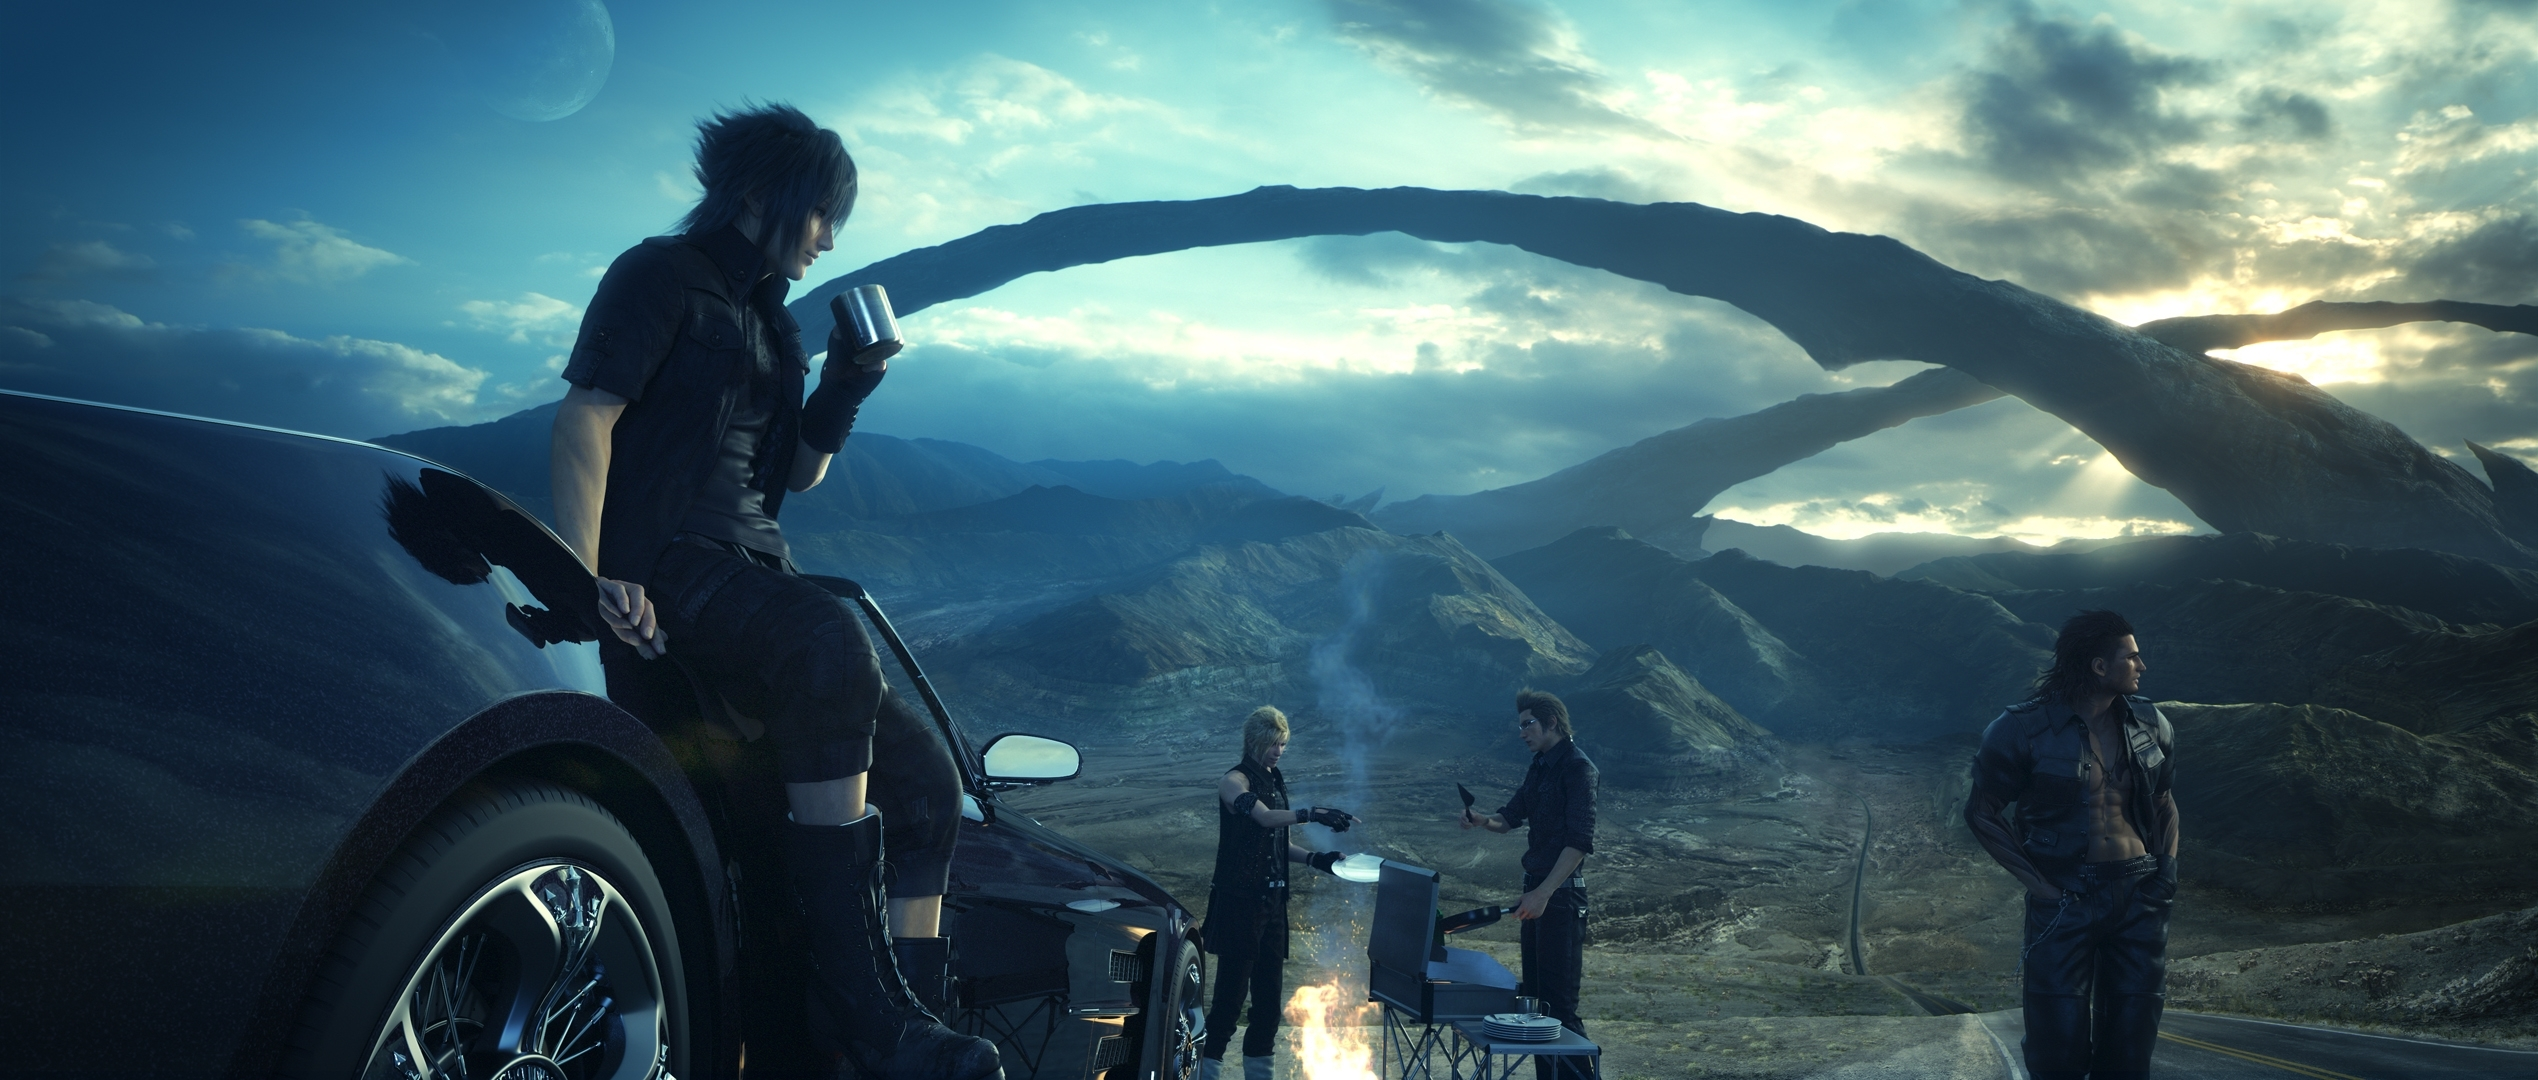 97 final fantasy xv hd wallpapers | background images - wallpaper